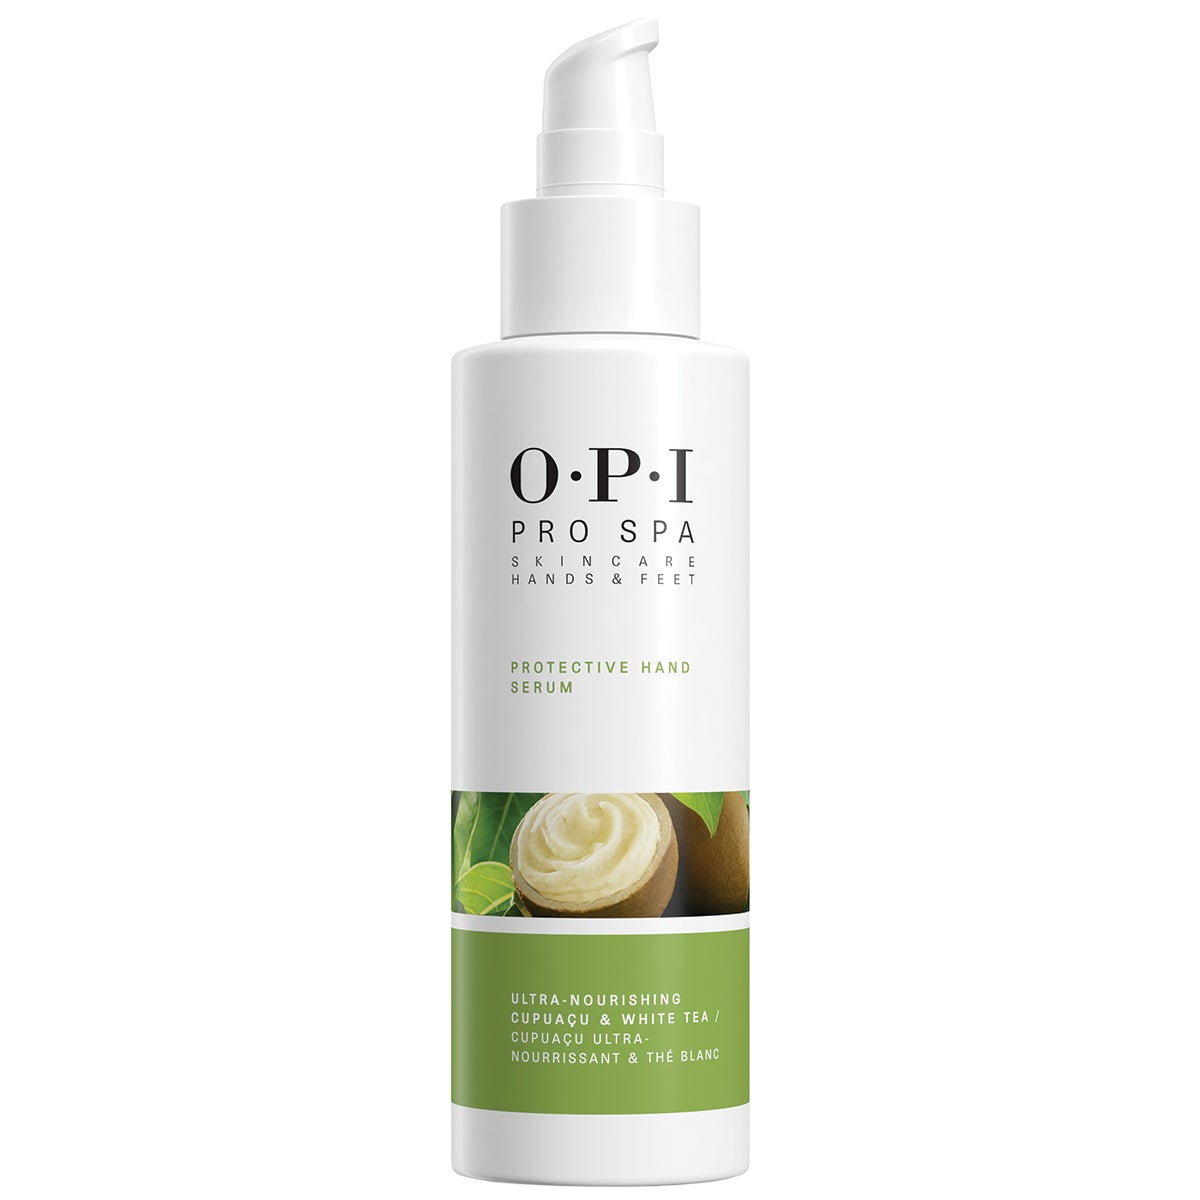 OPI Pro Spa Protective Hand Serum